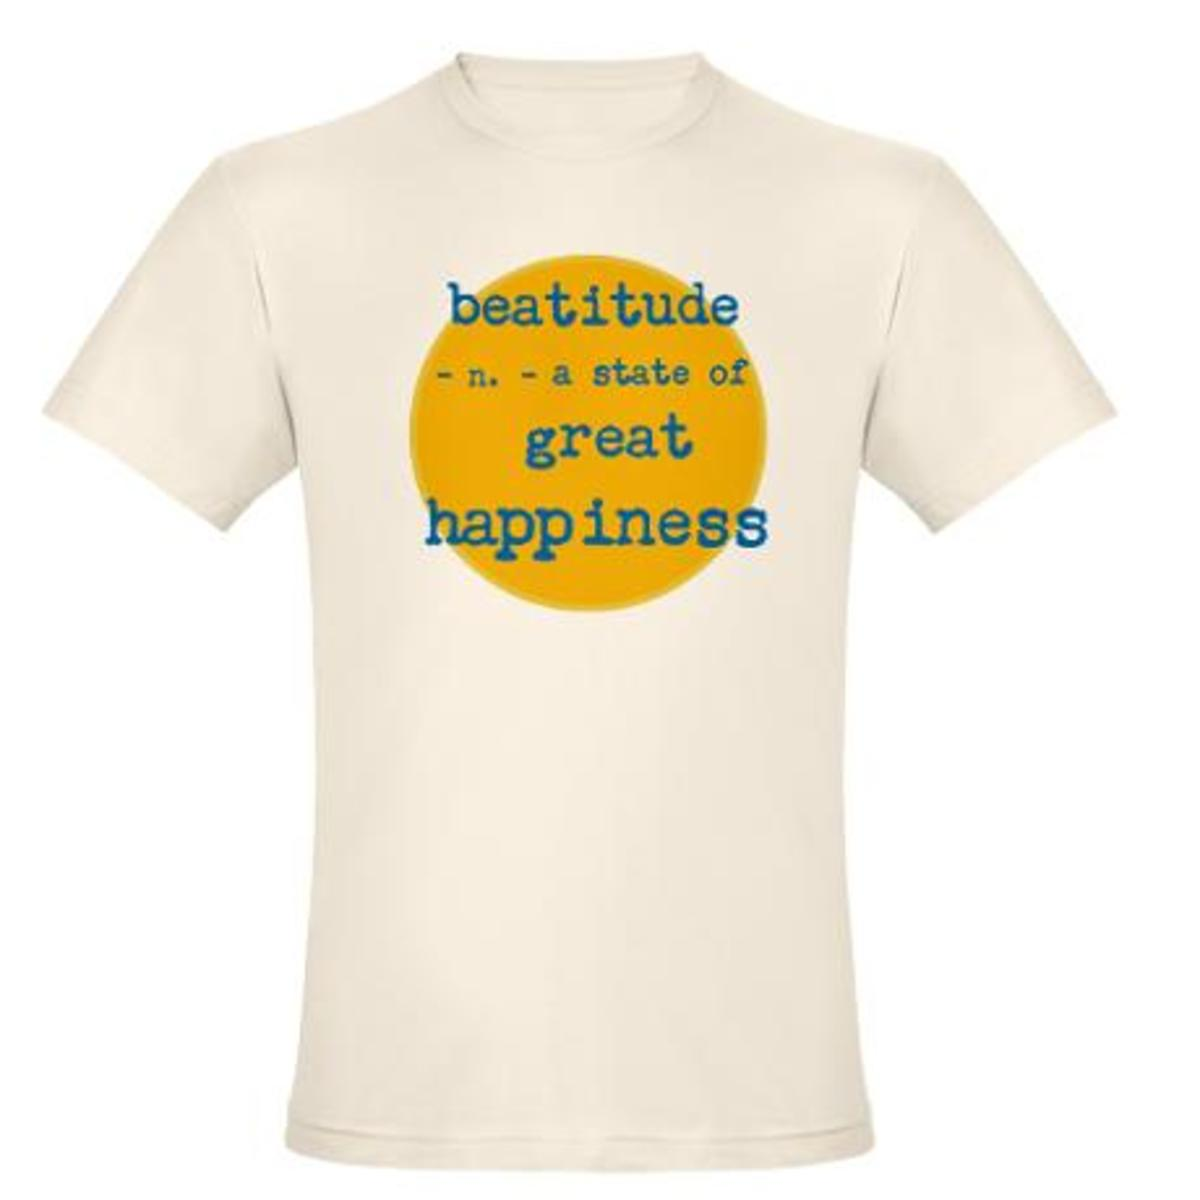 Beatitude: a state of great happiness